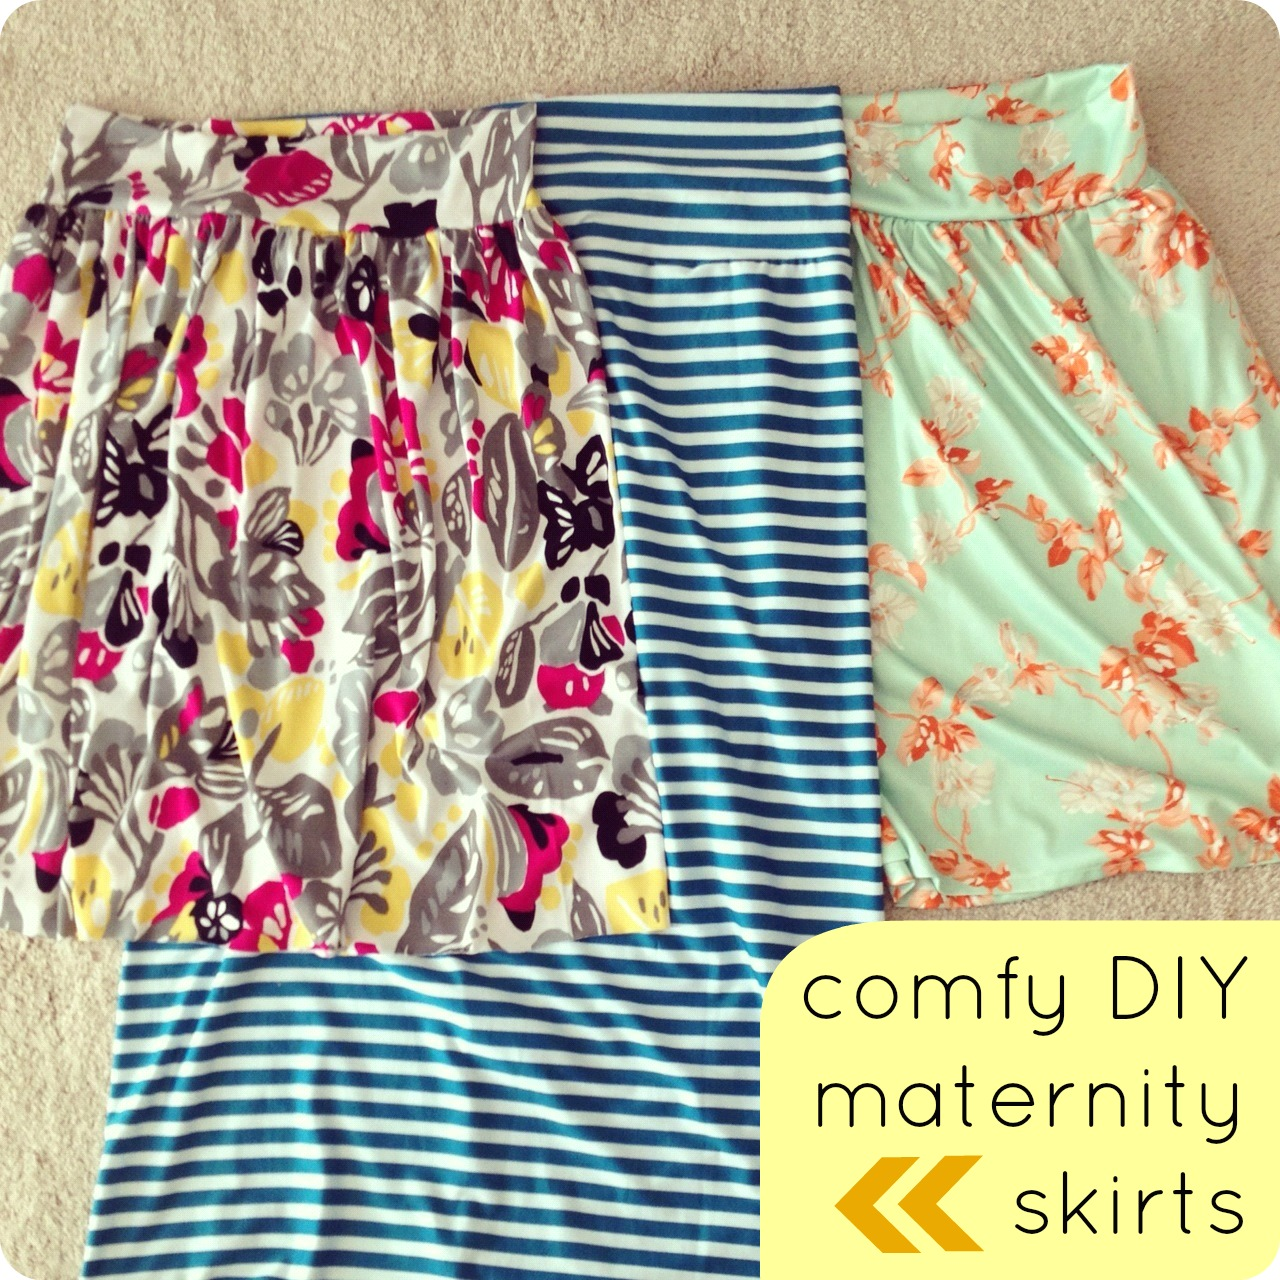 Diy Maternity Clothes Comfy Diy Maternity Skirts